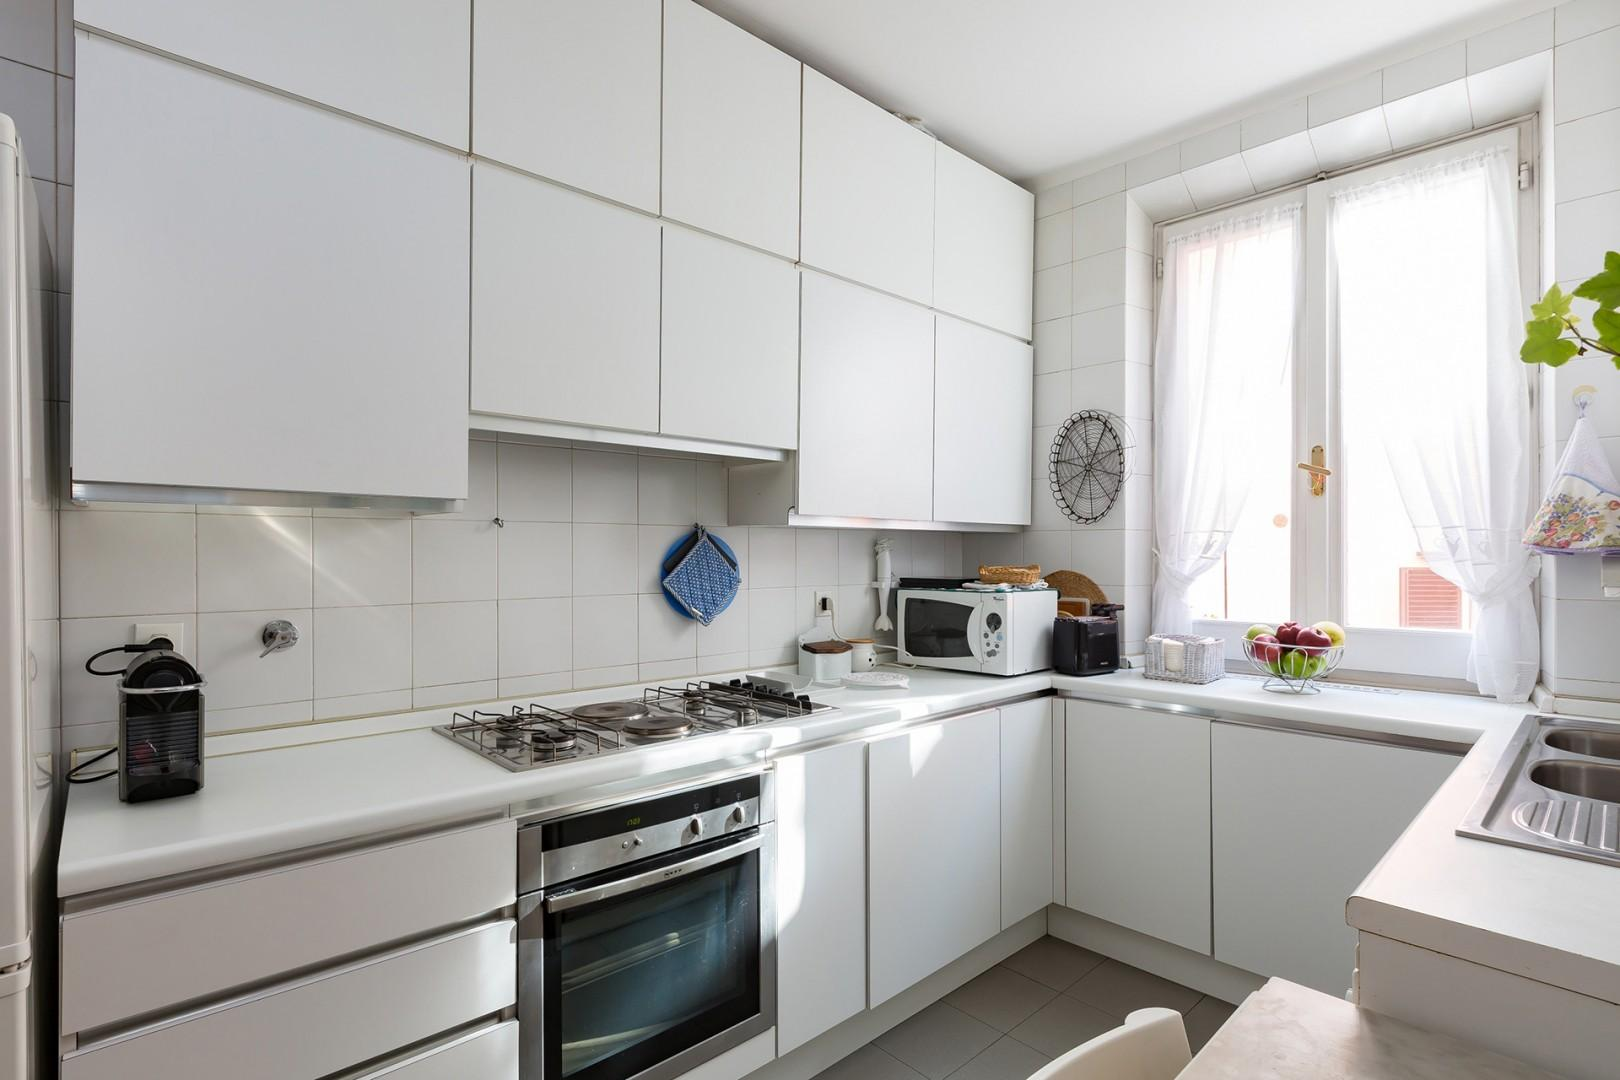 A full, working kitchen is at your disposal. Maid service can be arranged with advance notice.